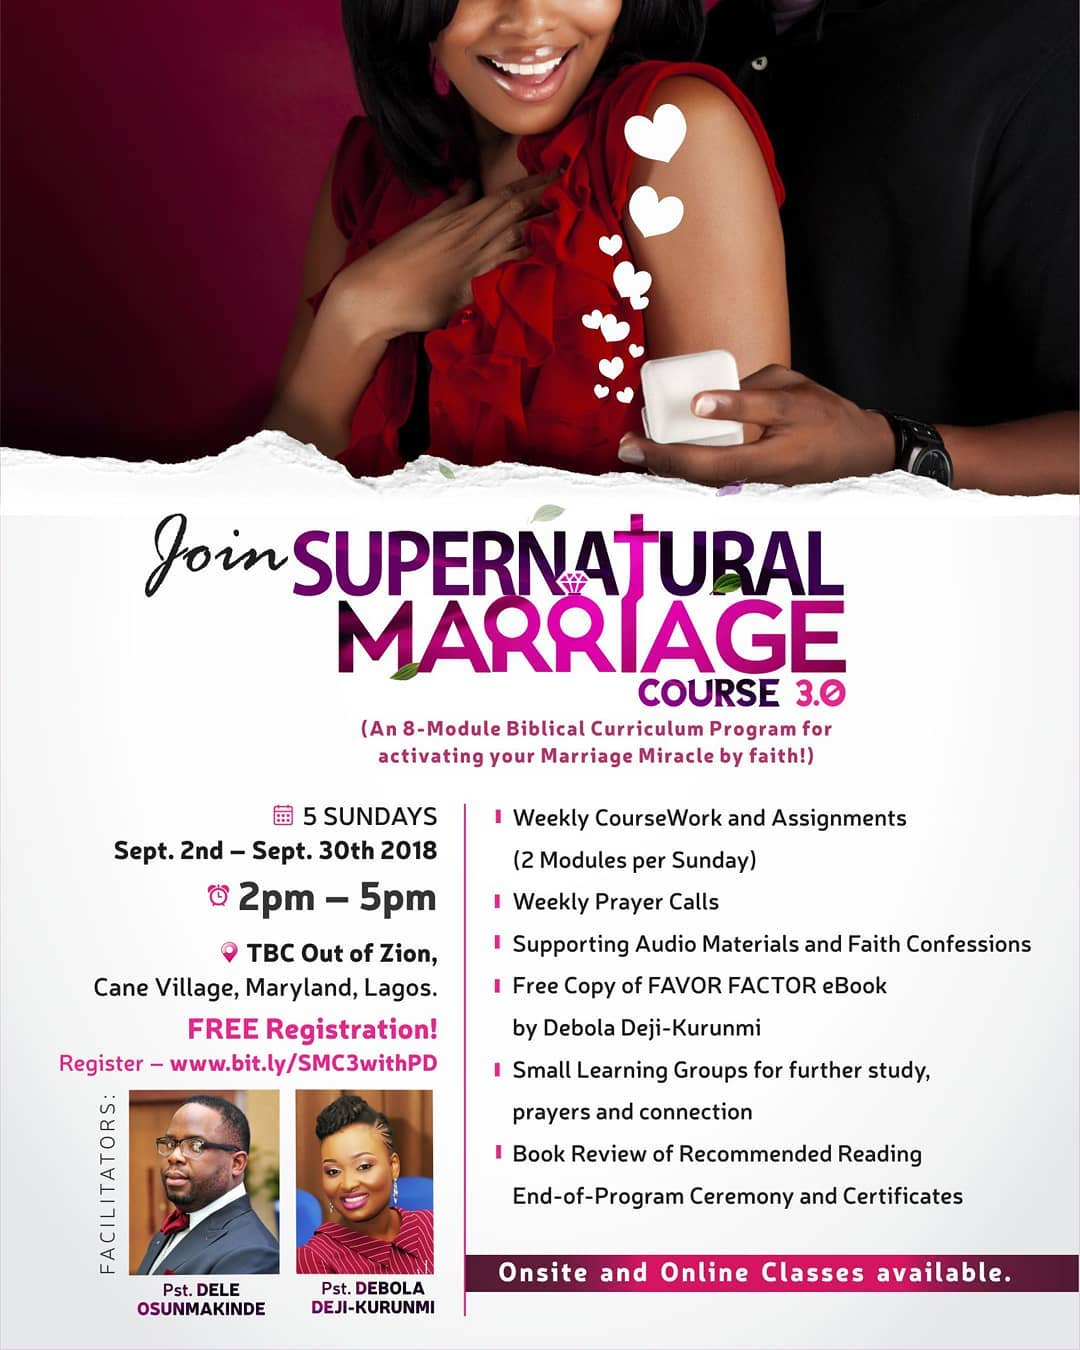 SUPERNATURAL MARRIAGE COURSE 3.0